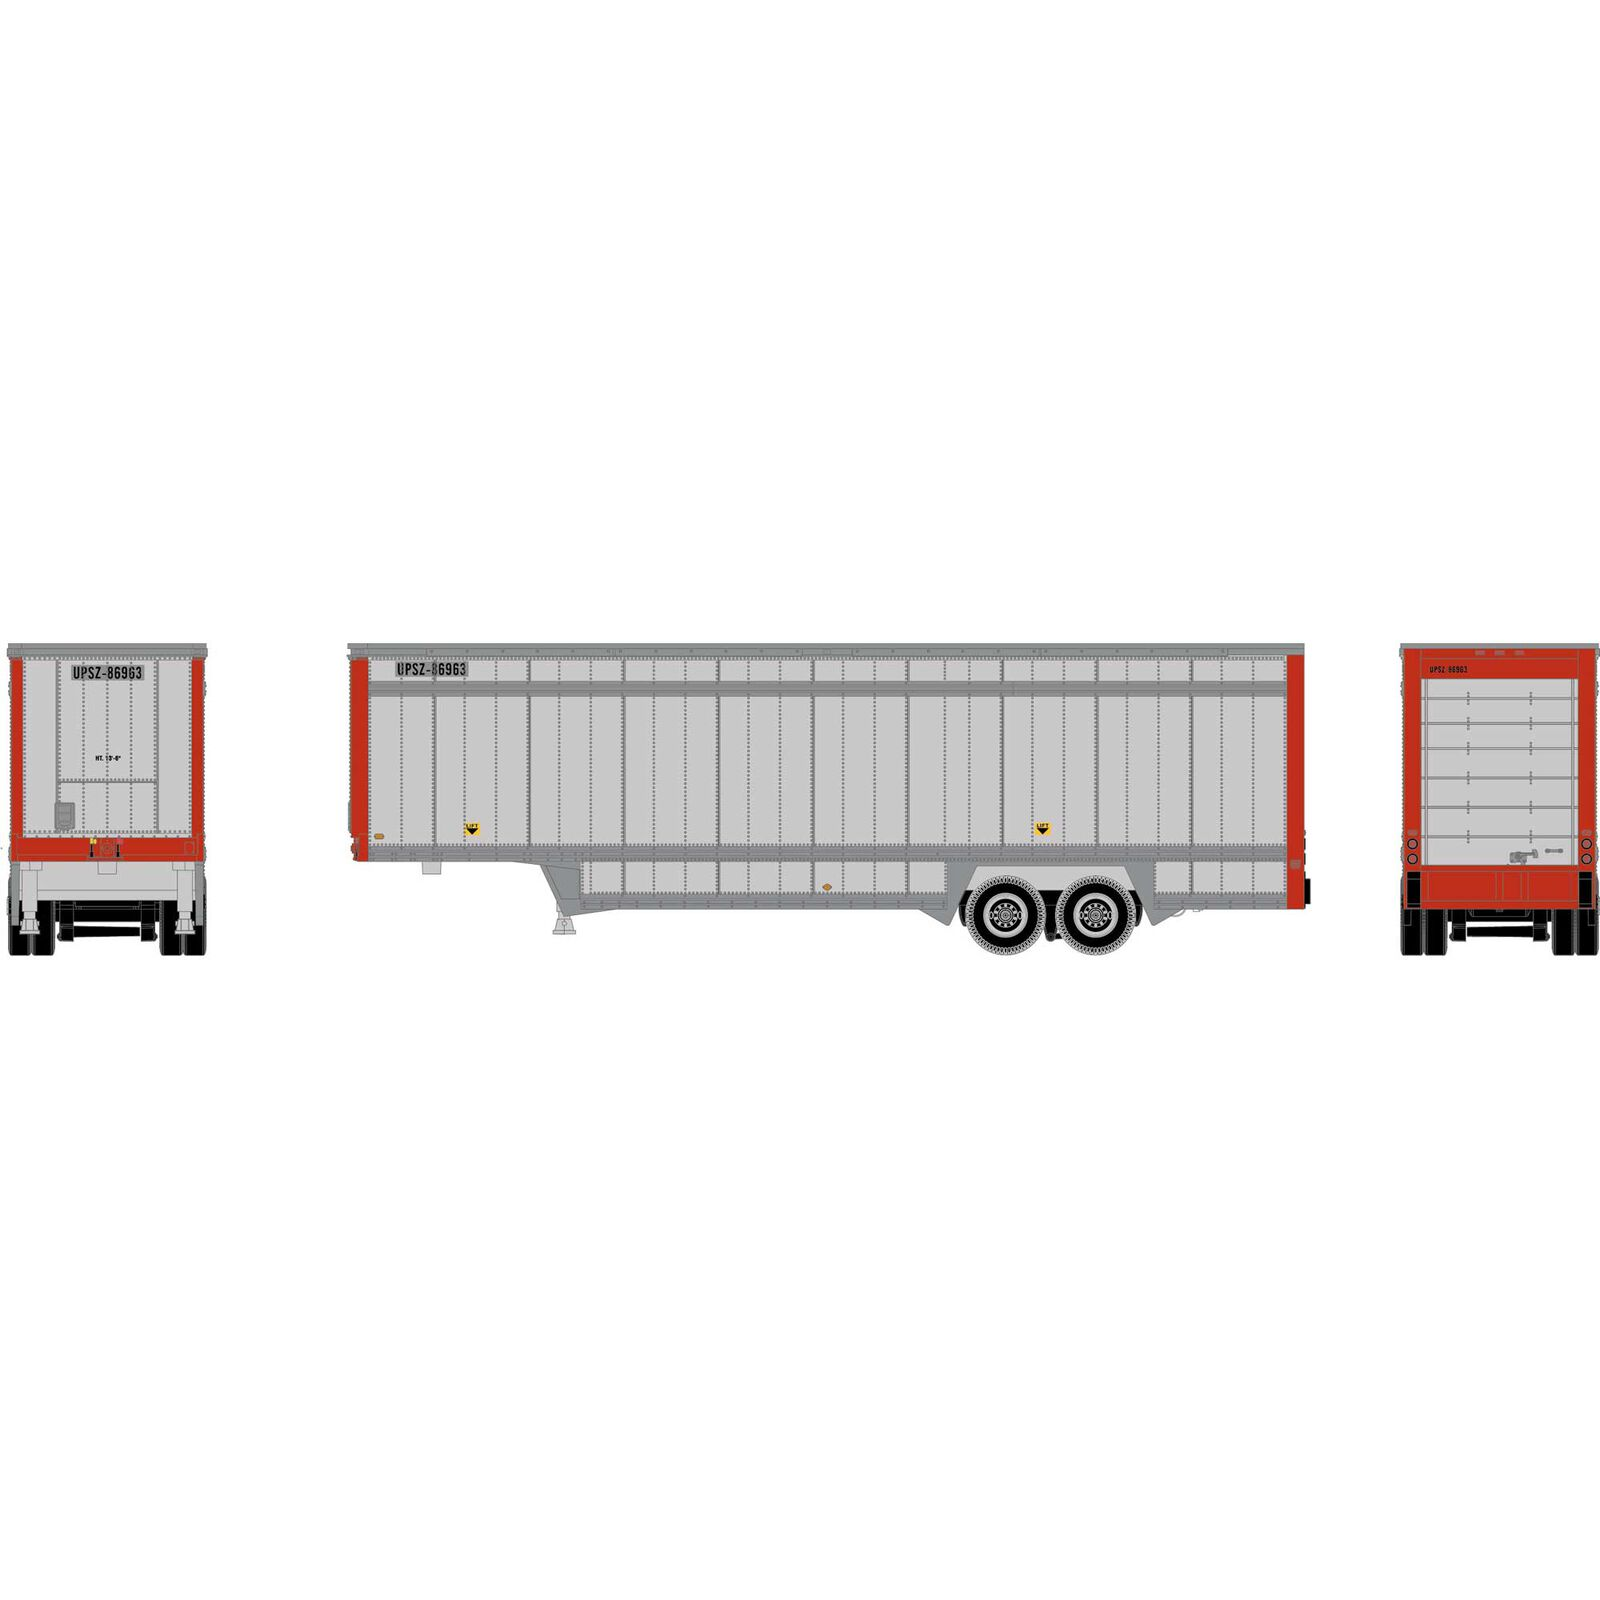 N 40' Drop Sill Parcel Trailer, UPS/Red Ends #86963